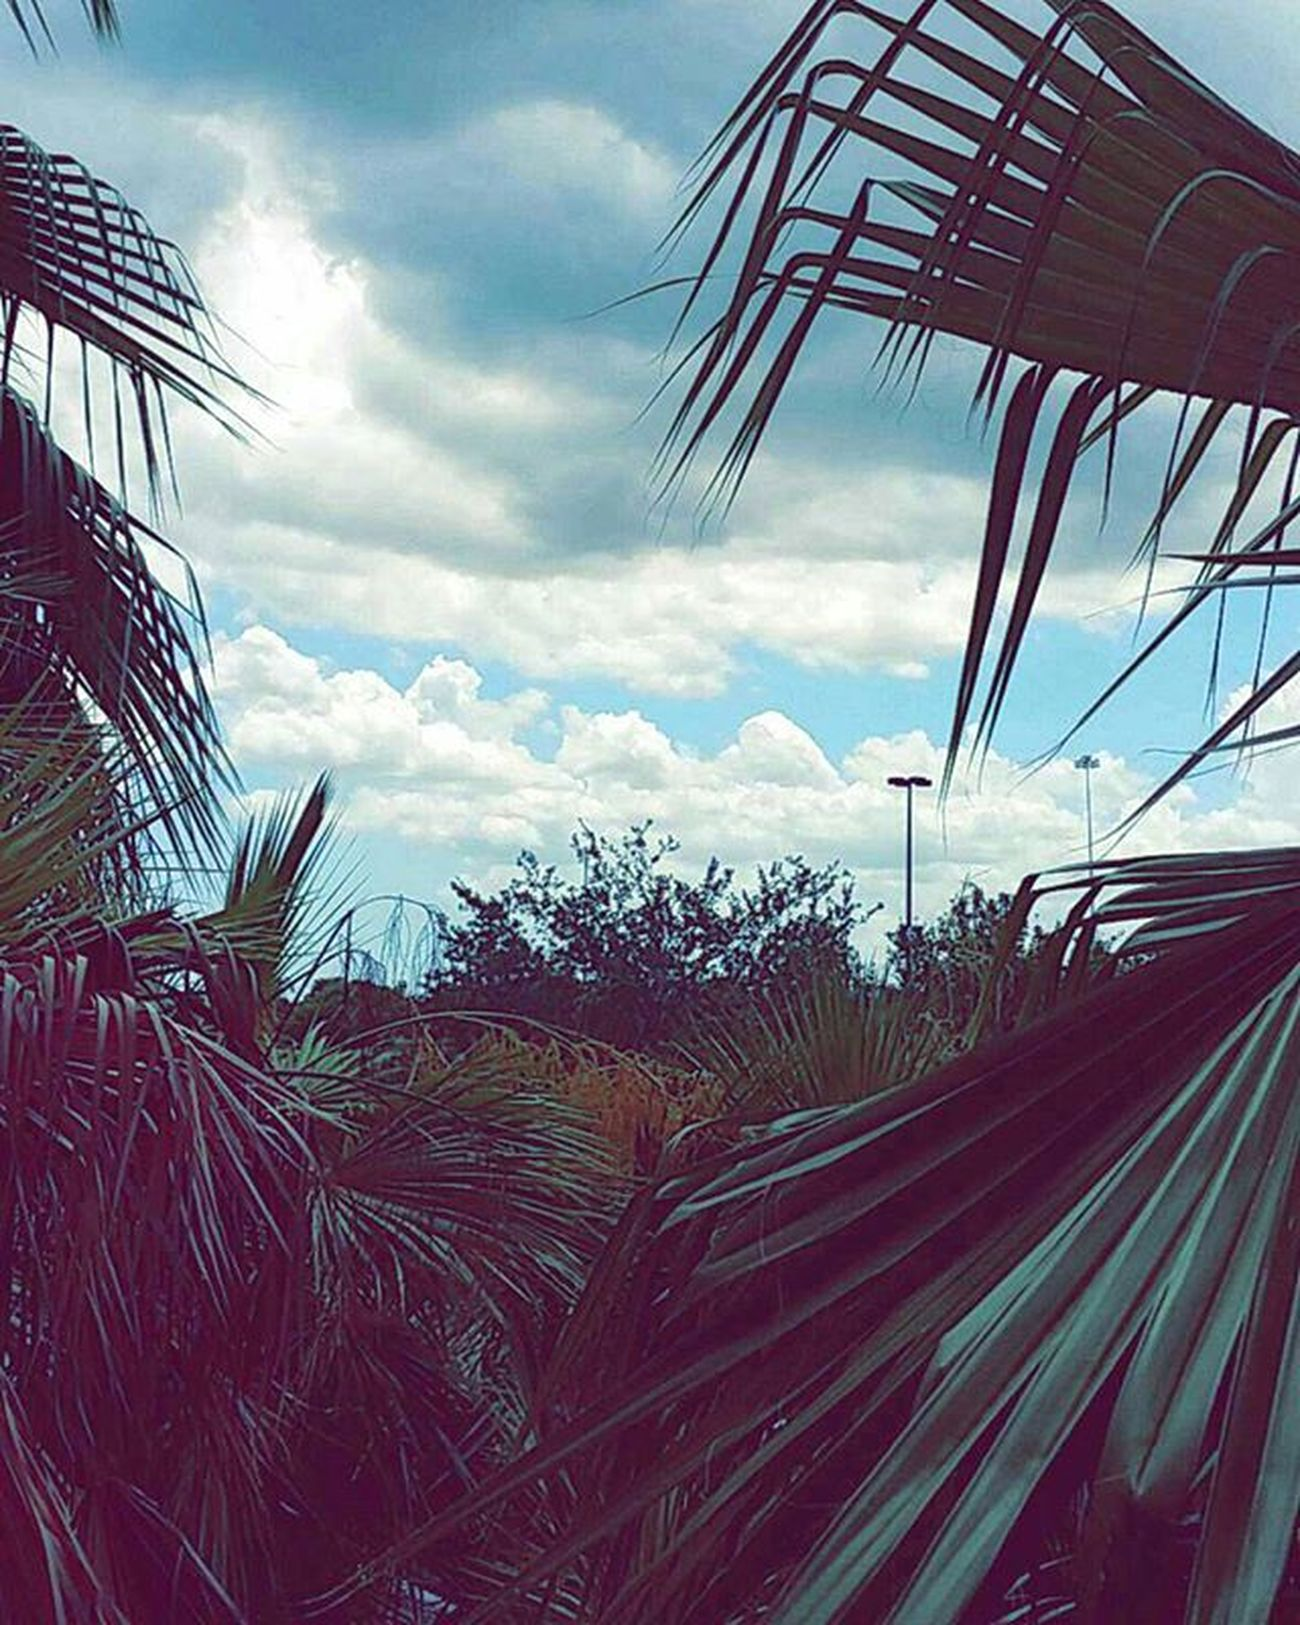 My old view over the summer. FIU Fiuhousing Fiueverglades Sky Palm Palms Palmtrees Miami Sweetwater Florida